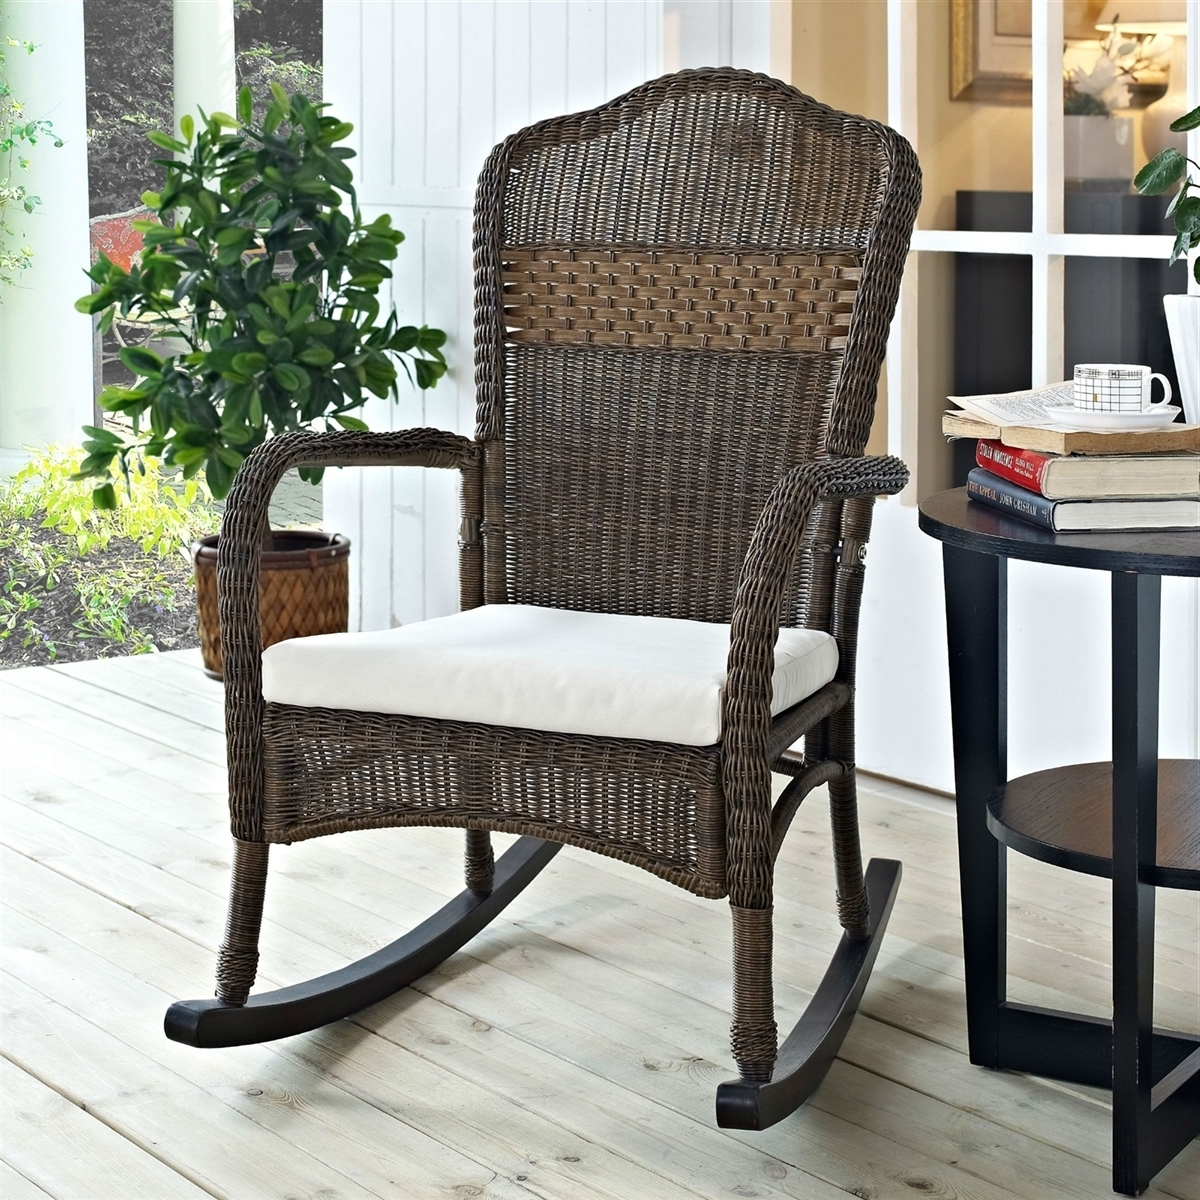 Widely Used Indoor Wicker Rocking Chairs In Wicker Patio Furniture Rocking Chair Mocha With Beige Cushion (View 15 of 15)